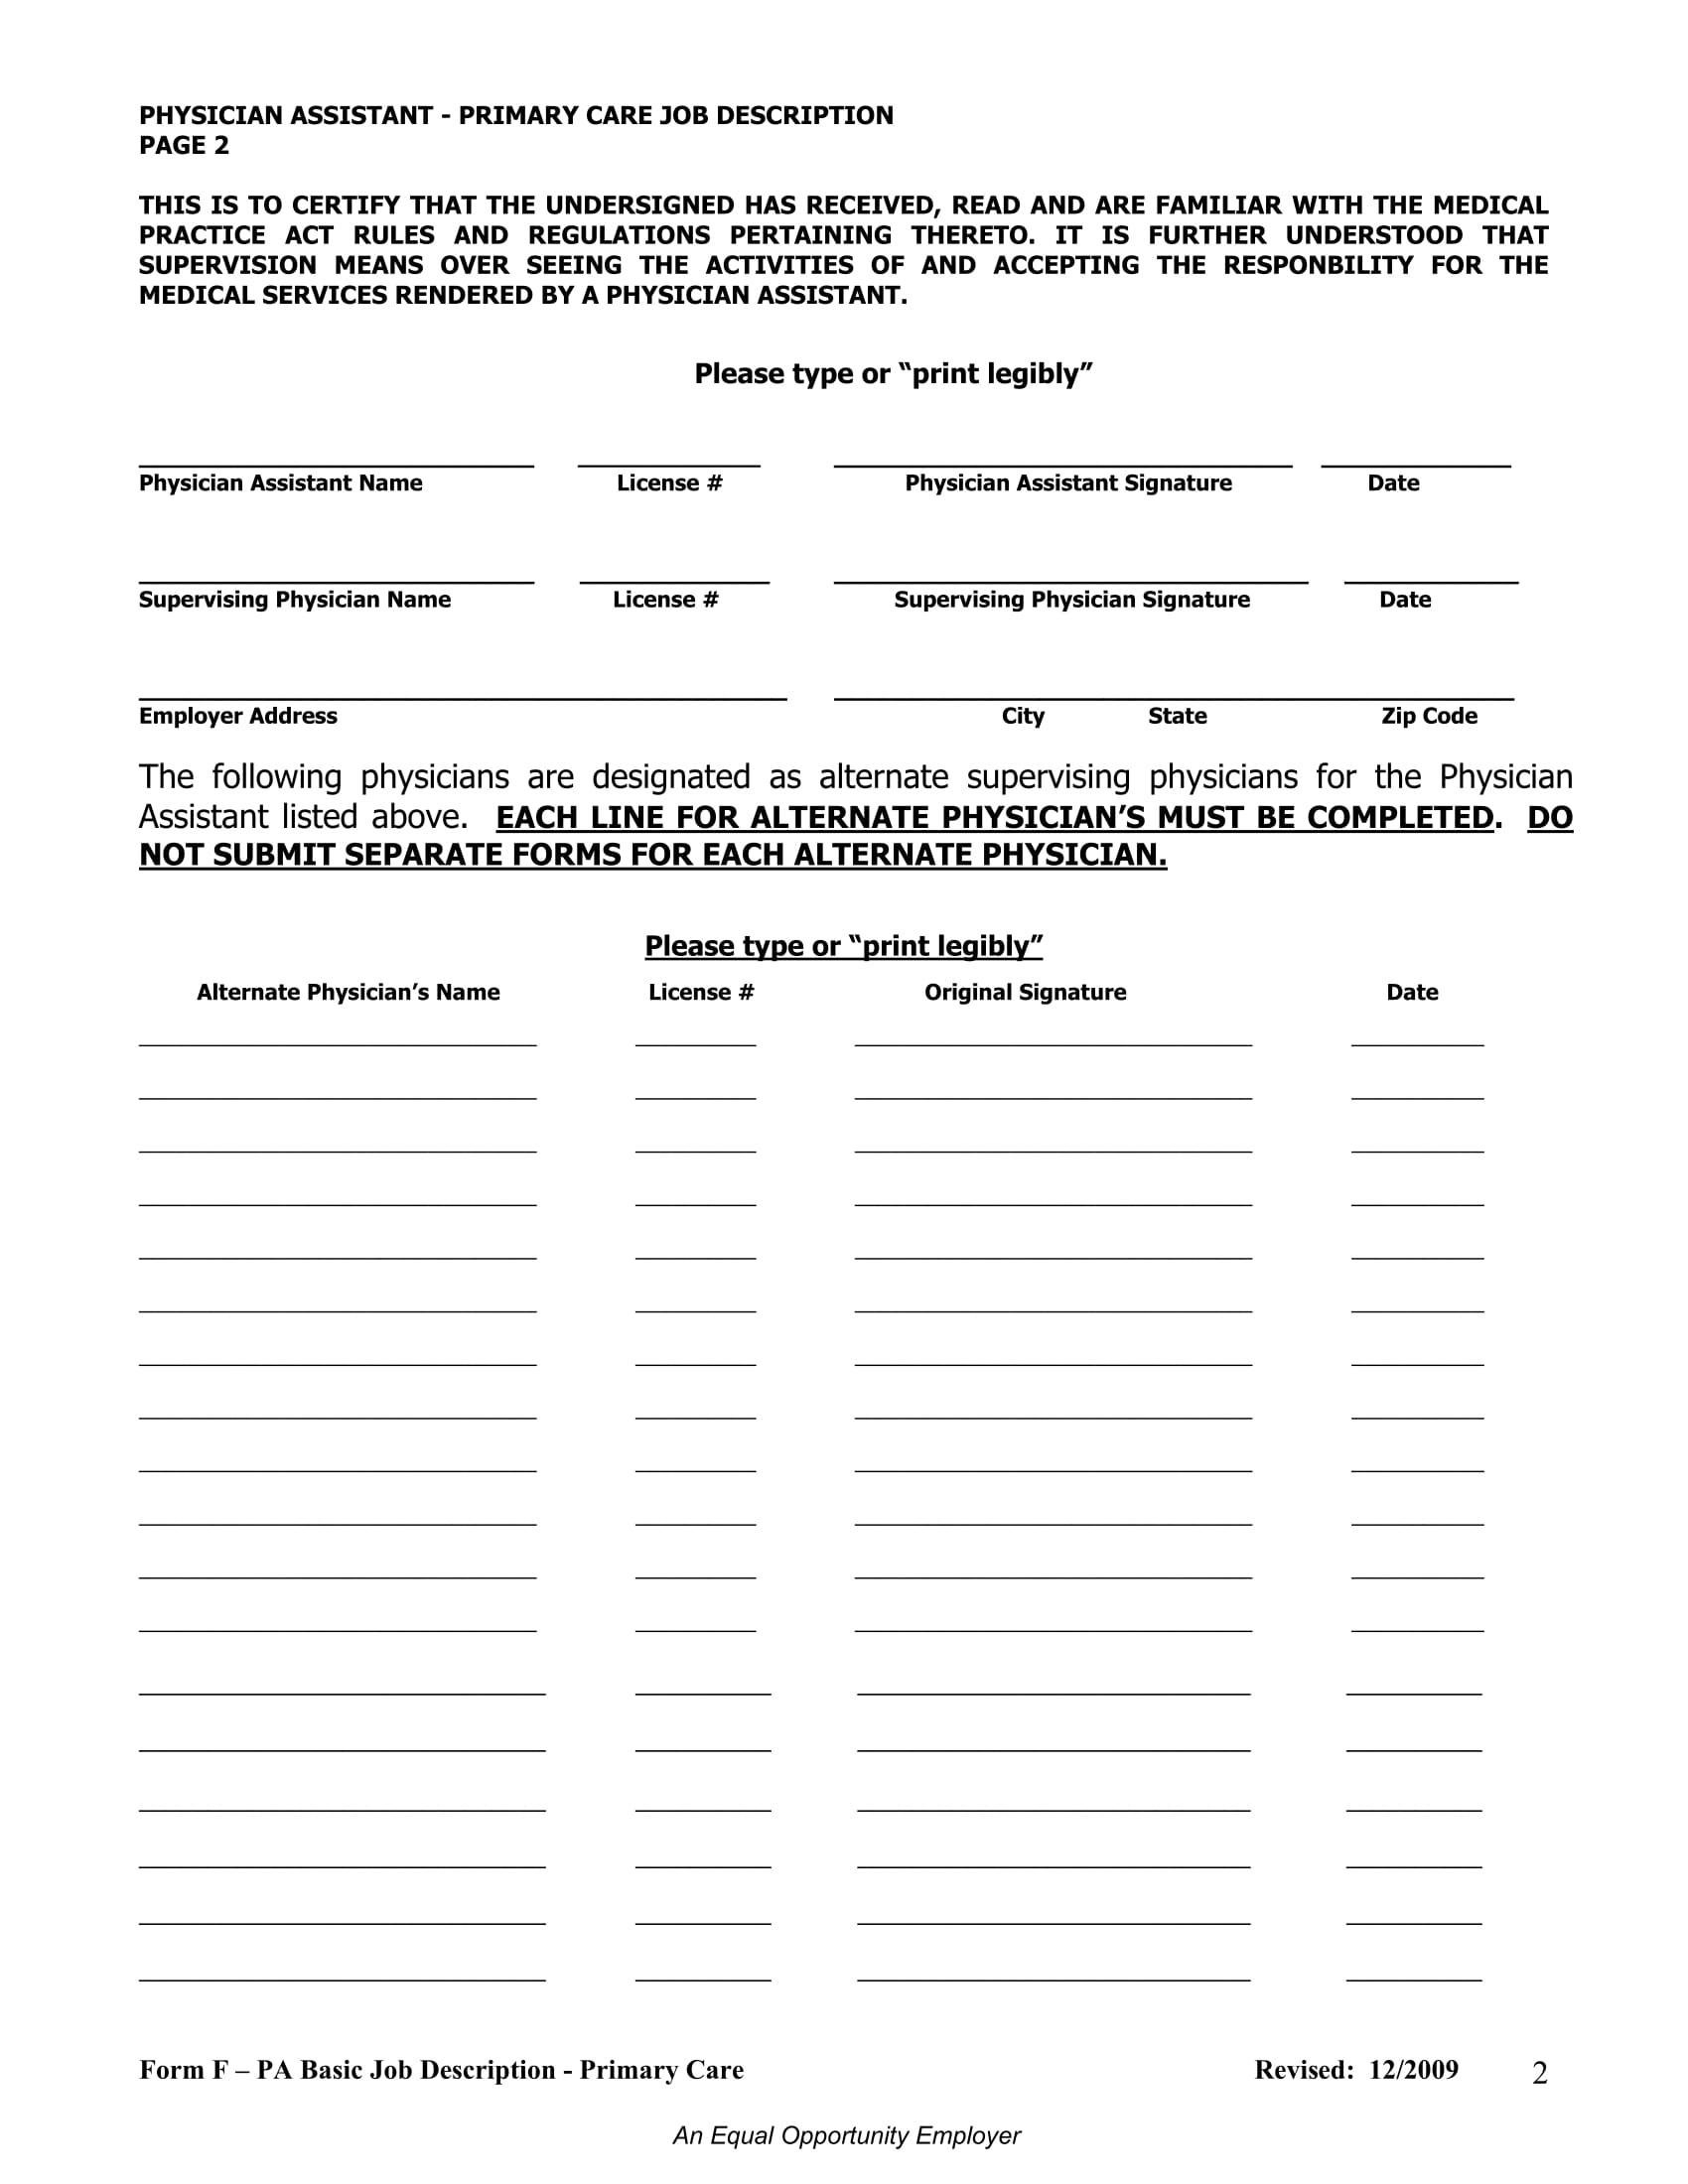 primary care job description form 2